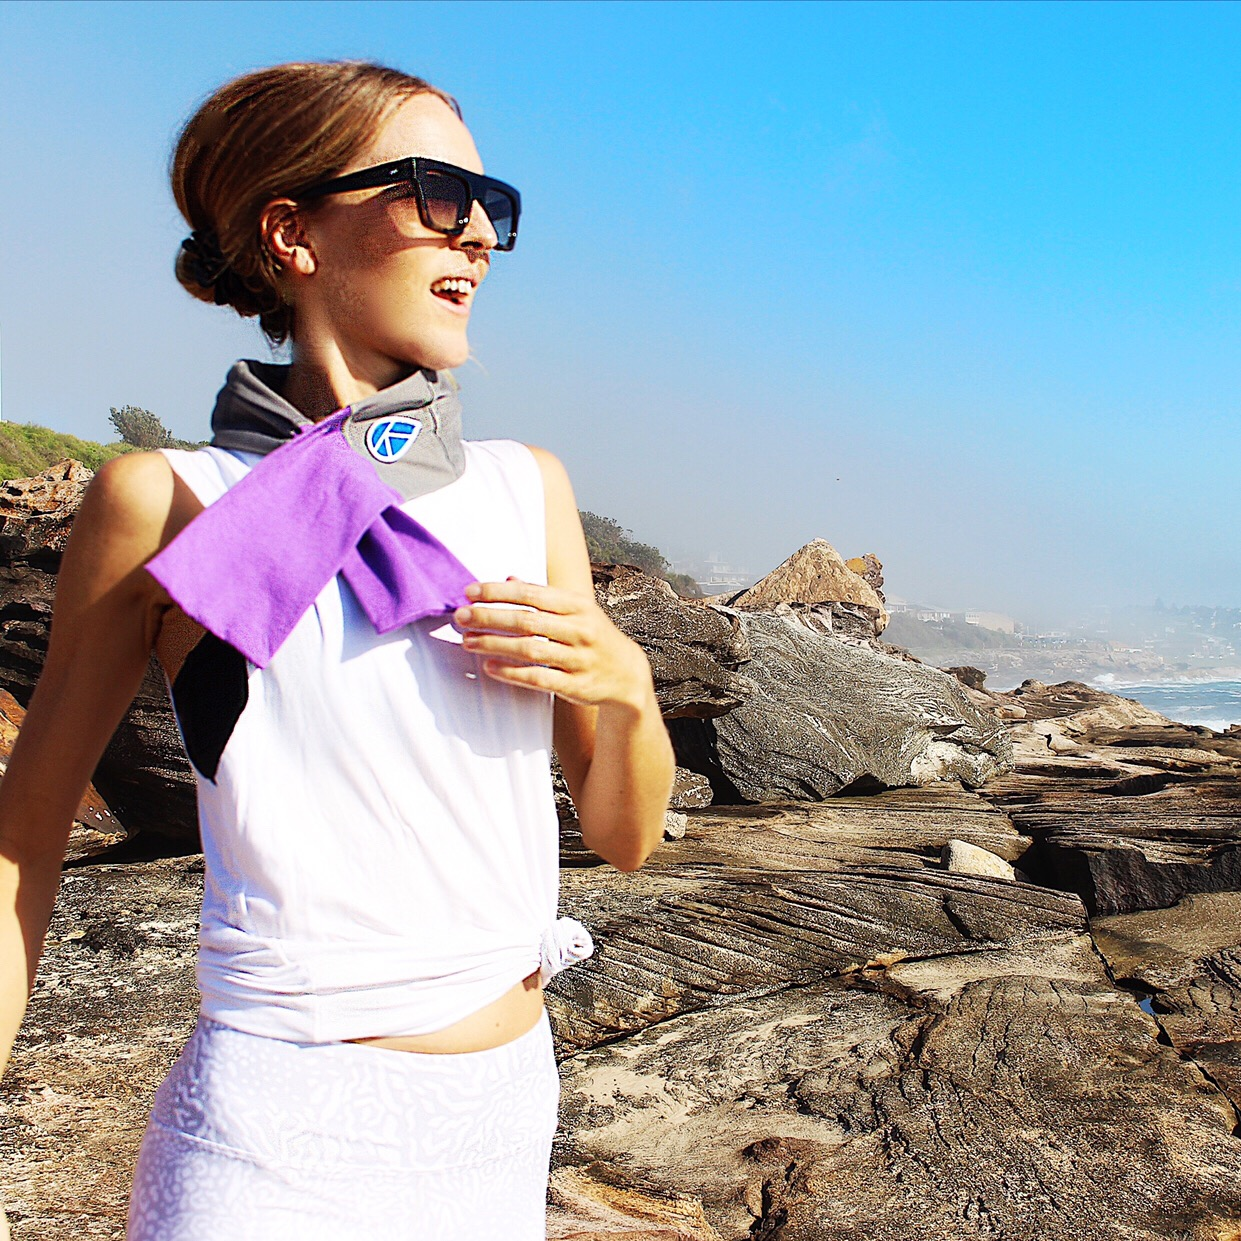 @stayinghealthywithms's cover photo for 'Koldtec's Ice Towel - freeze & go!'